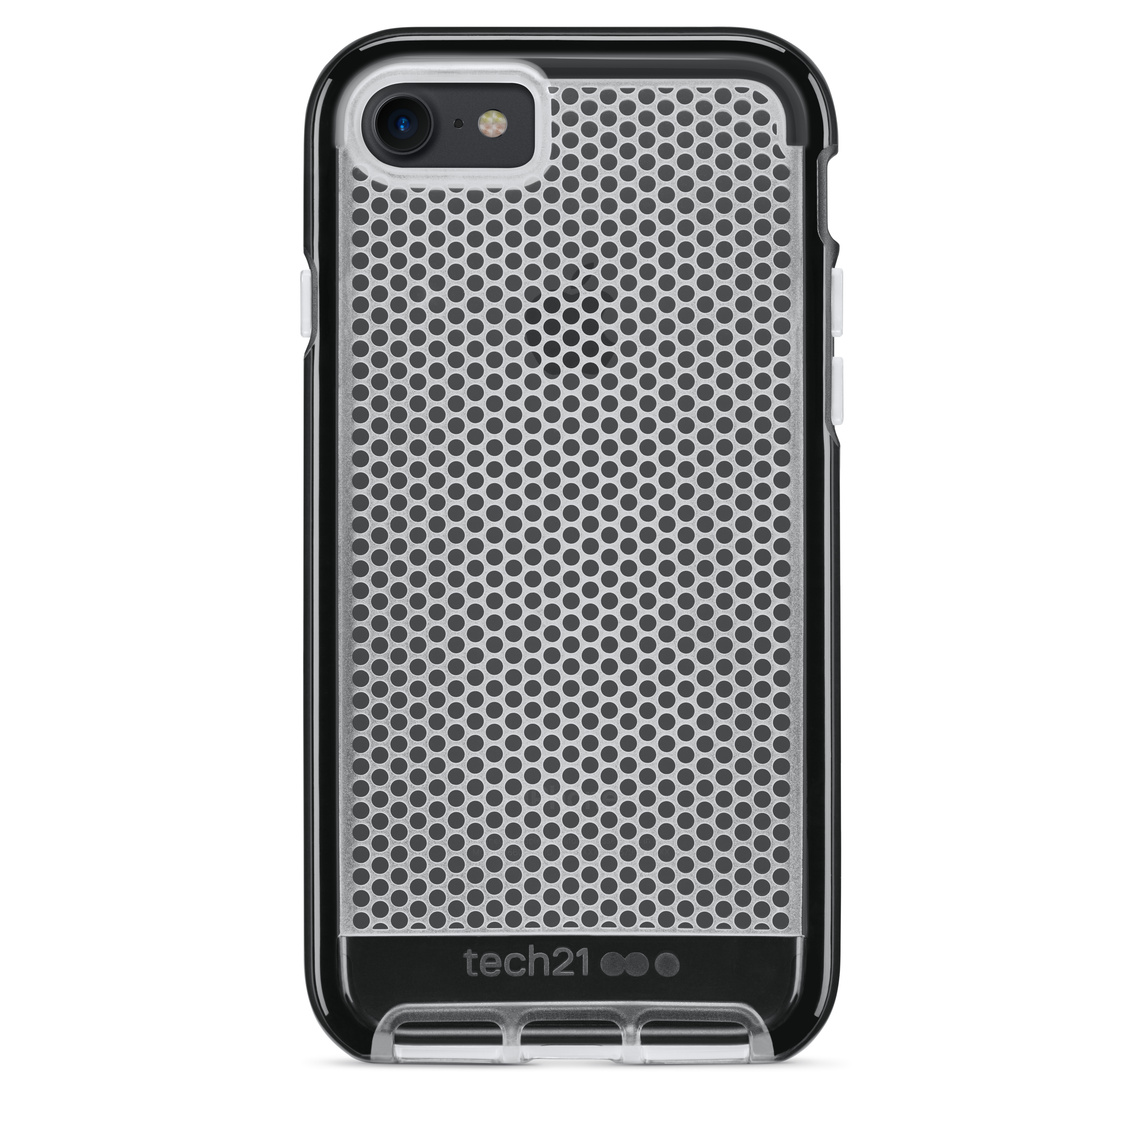 the latest b47b0 895f7 Tech21 Evo Mesh Case for iPhone 8/7